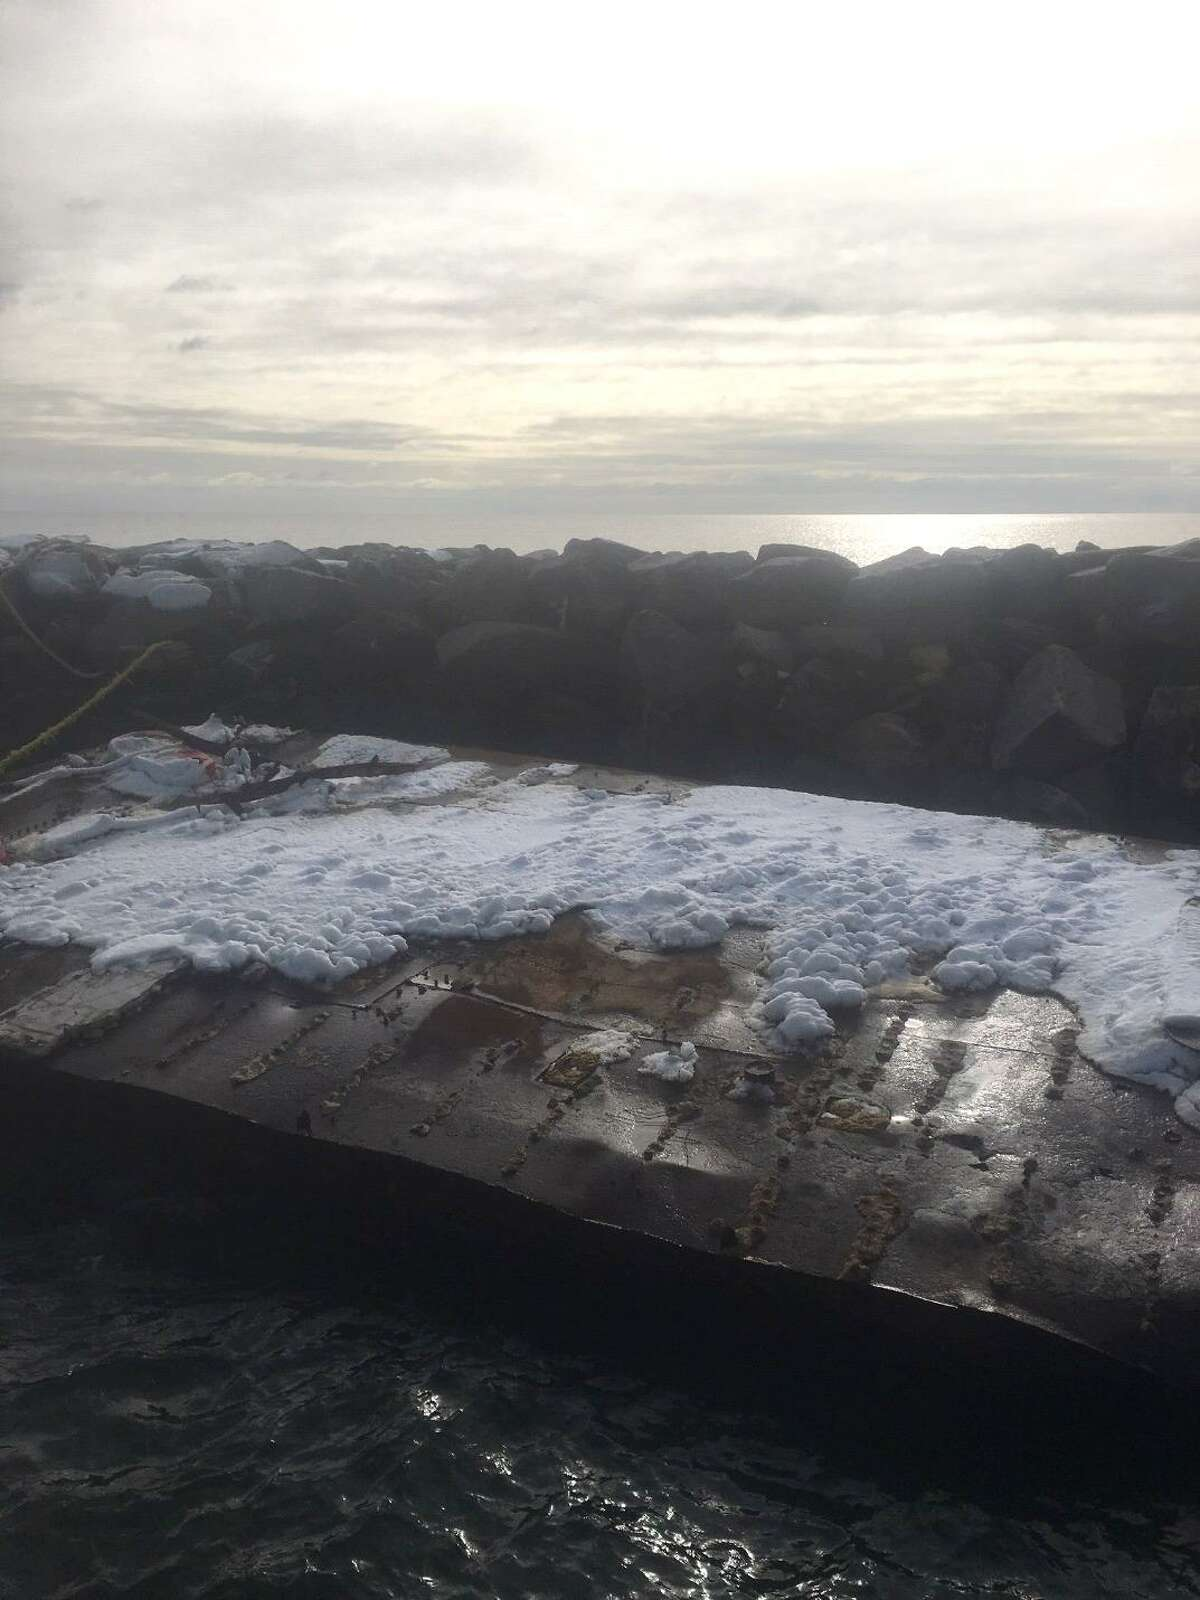 A barge tied to the breakwater at Lighthouse Point Park after drifting from English Station in the Mill River, photographed in January 2021.